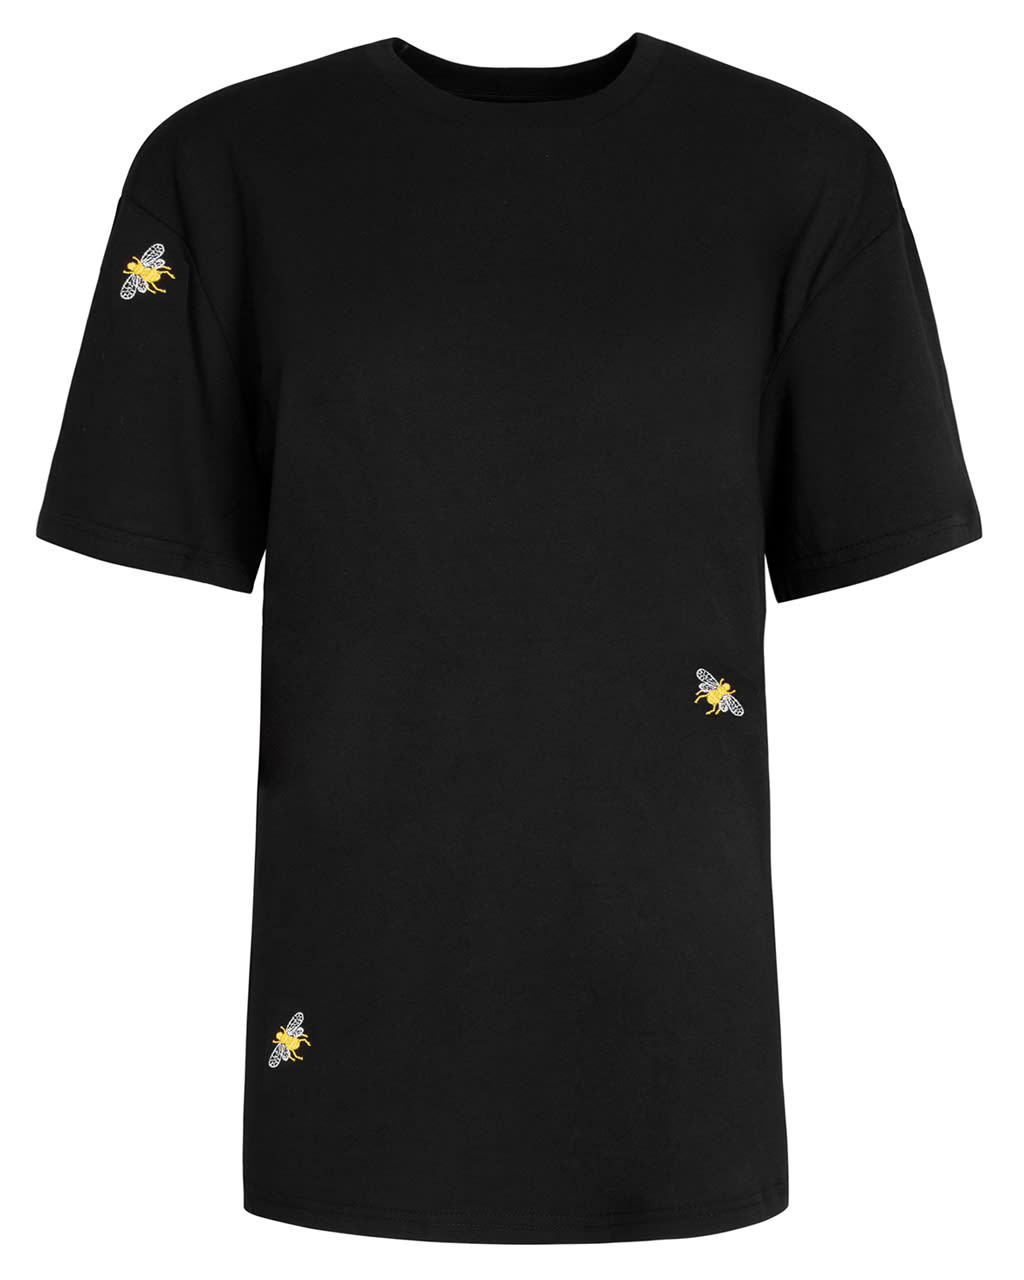 Bee Embroidered T-Shirt Black